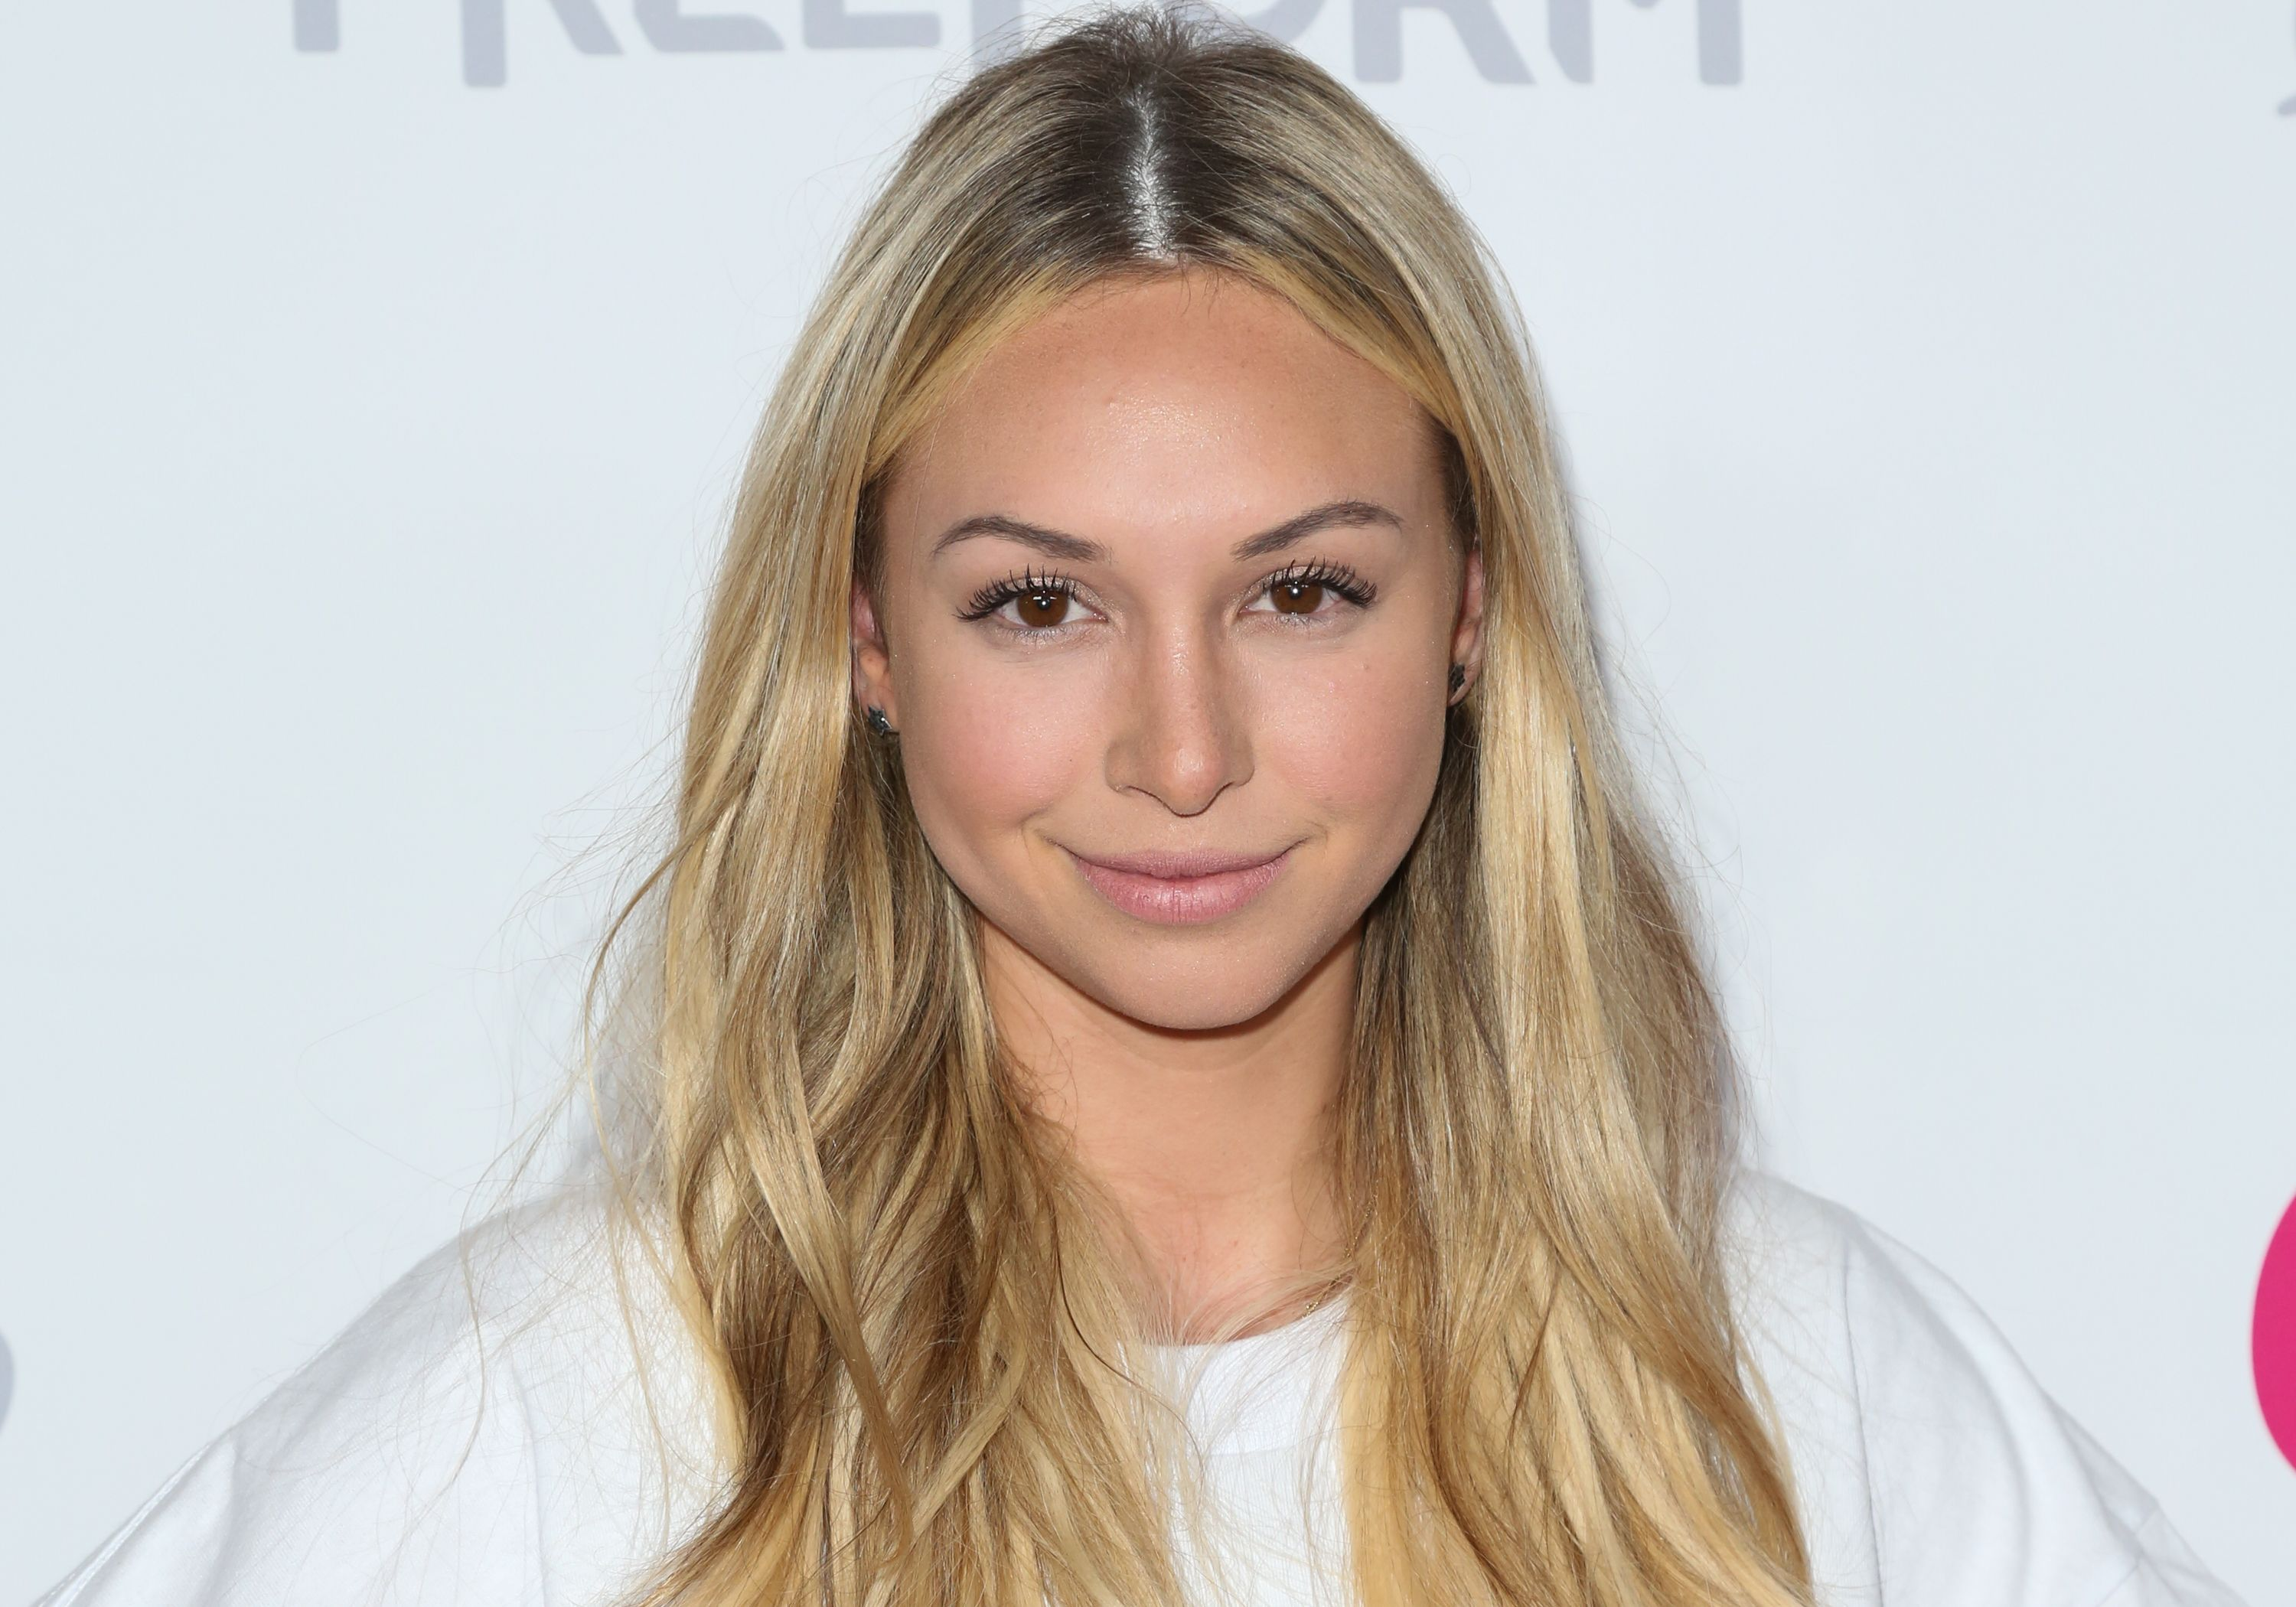 Young Corinne Olympios naked (94 foto and video), Pussy, Cleavage, Selfie, braless 2015